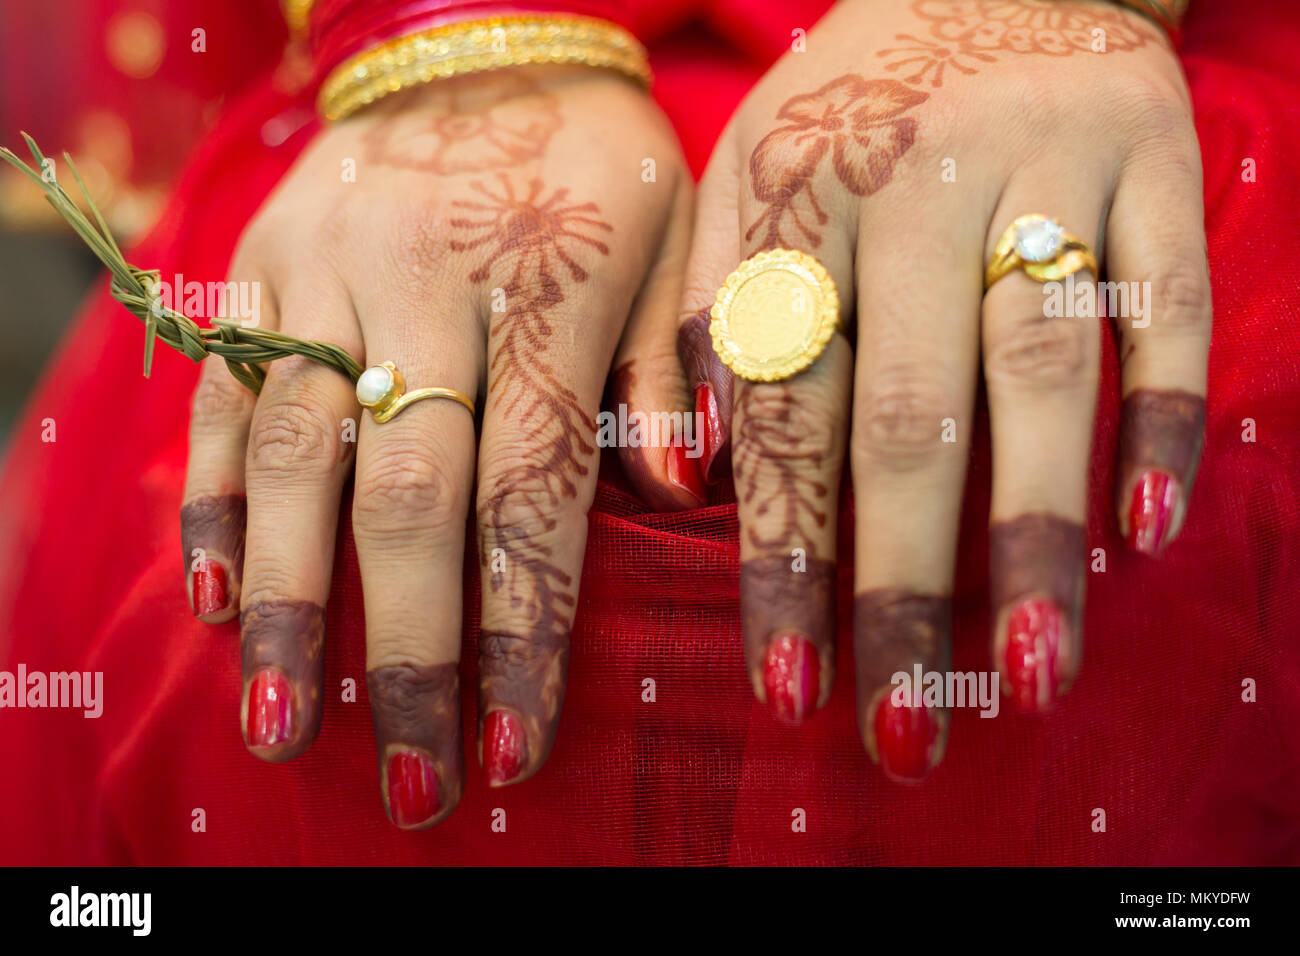 Hindu Nepali Brides Hands with wedding rings on the wedding day